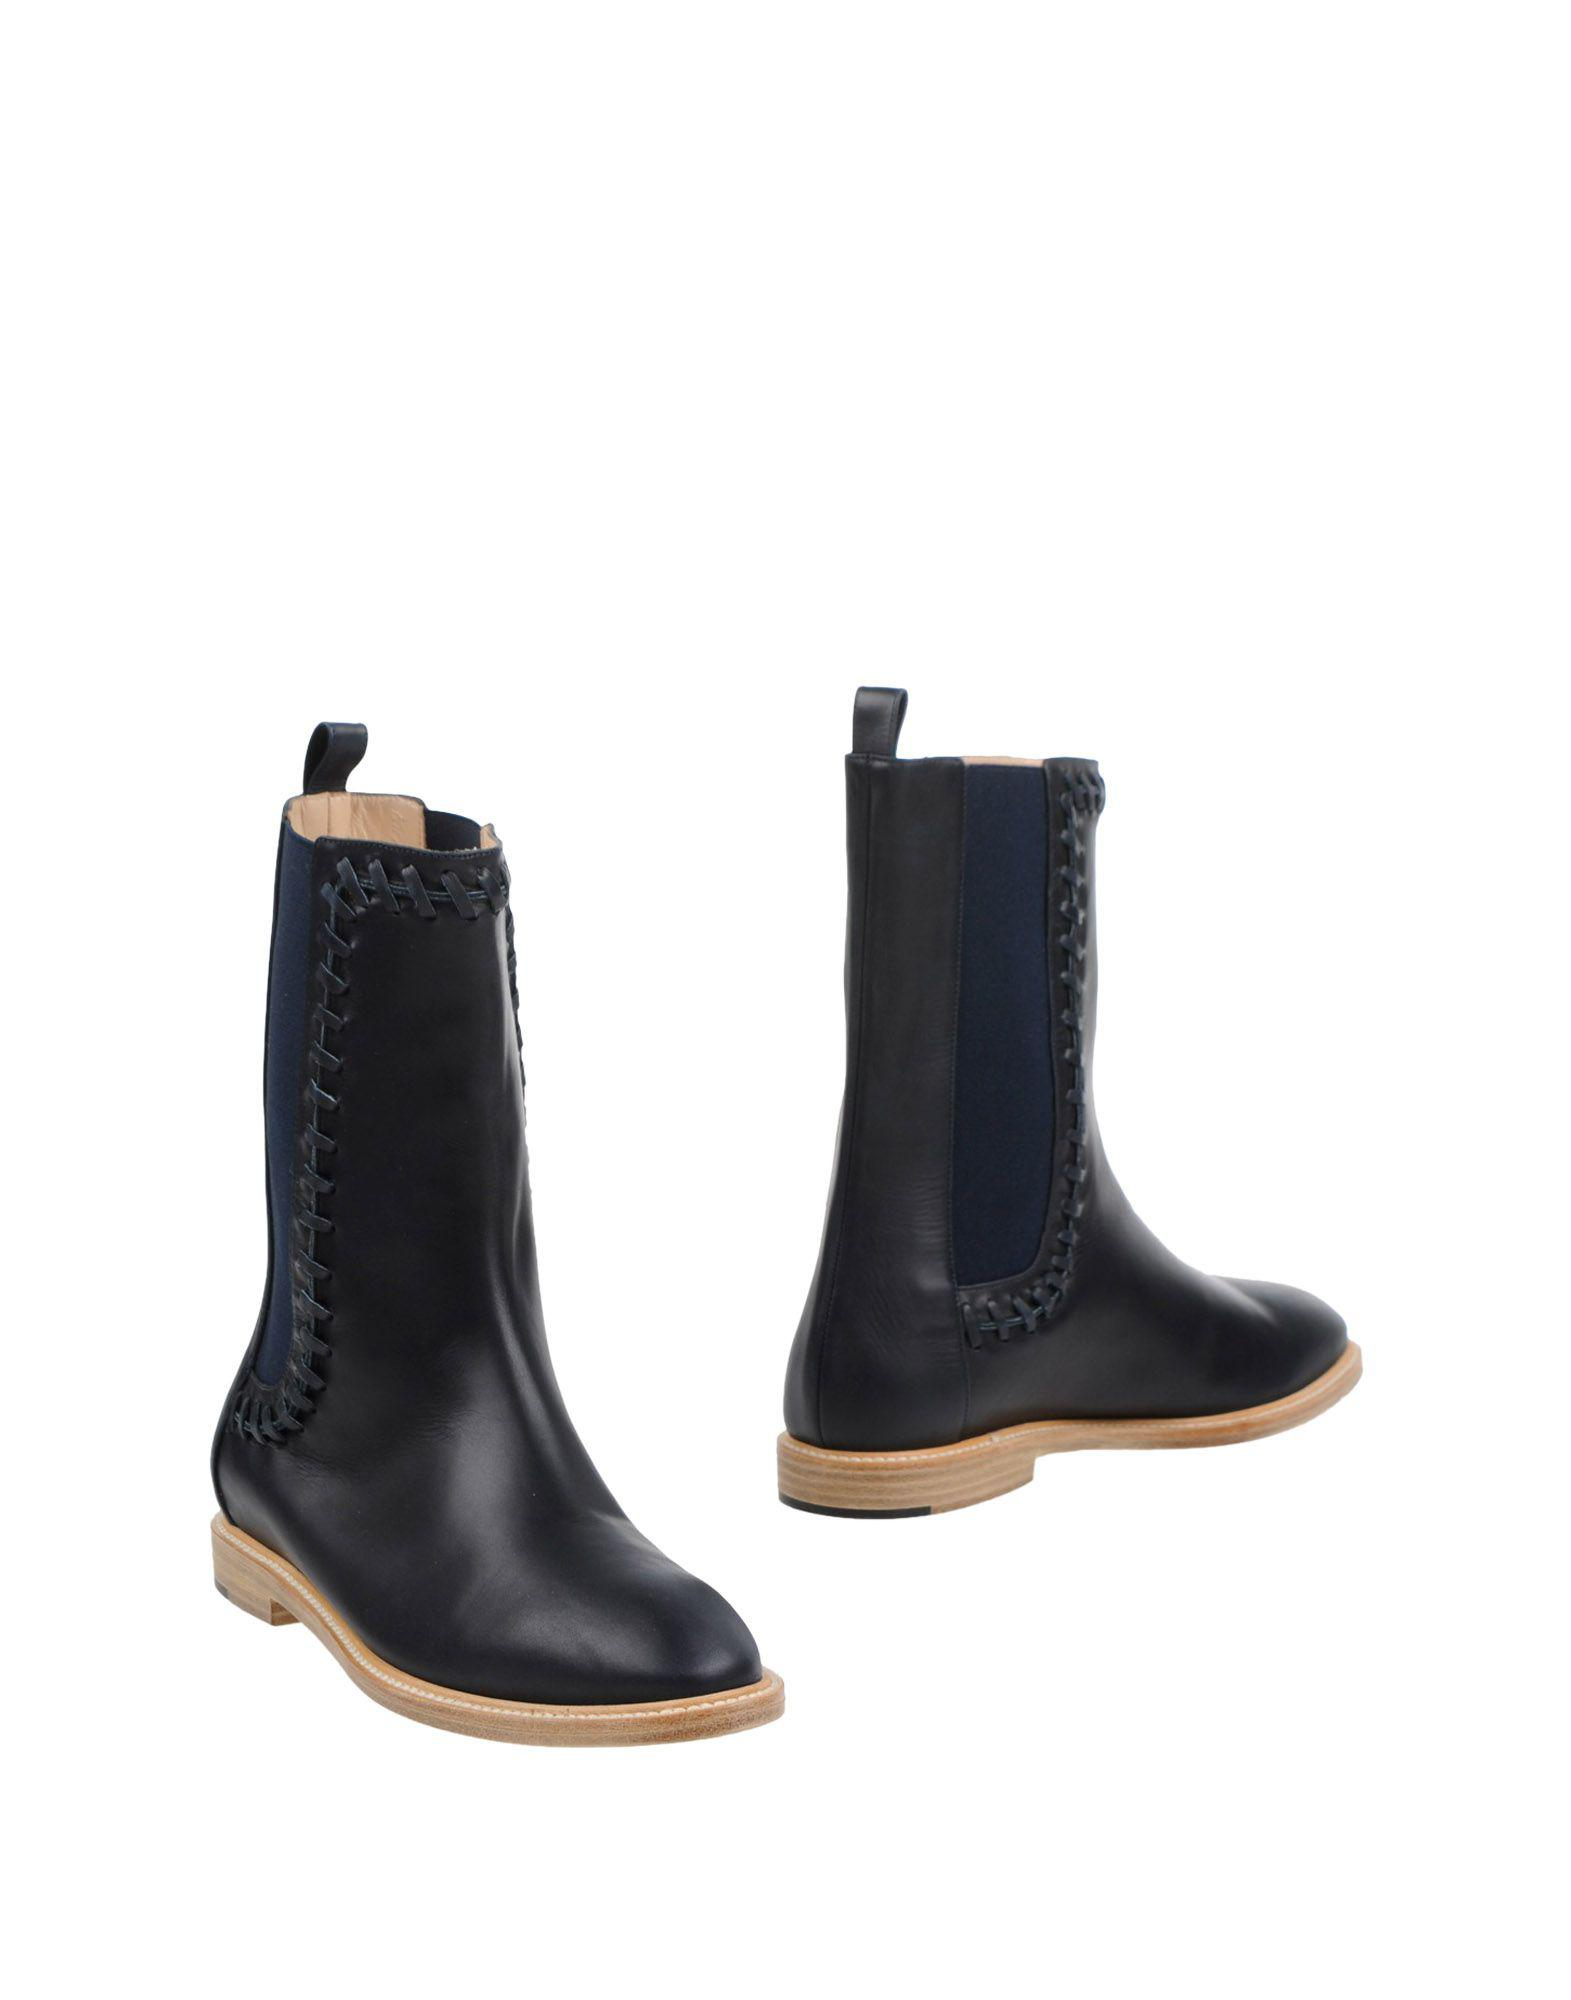 Maiyet Leather Round-Toe Ankle Boots new sale online sale latest collections clearance low shipping jDfvwF